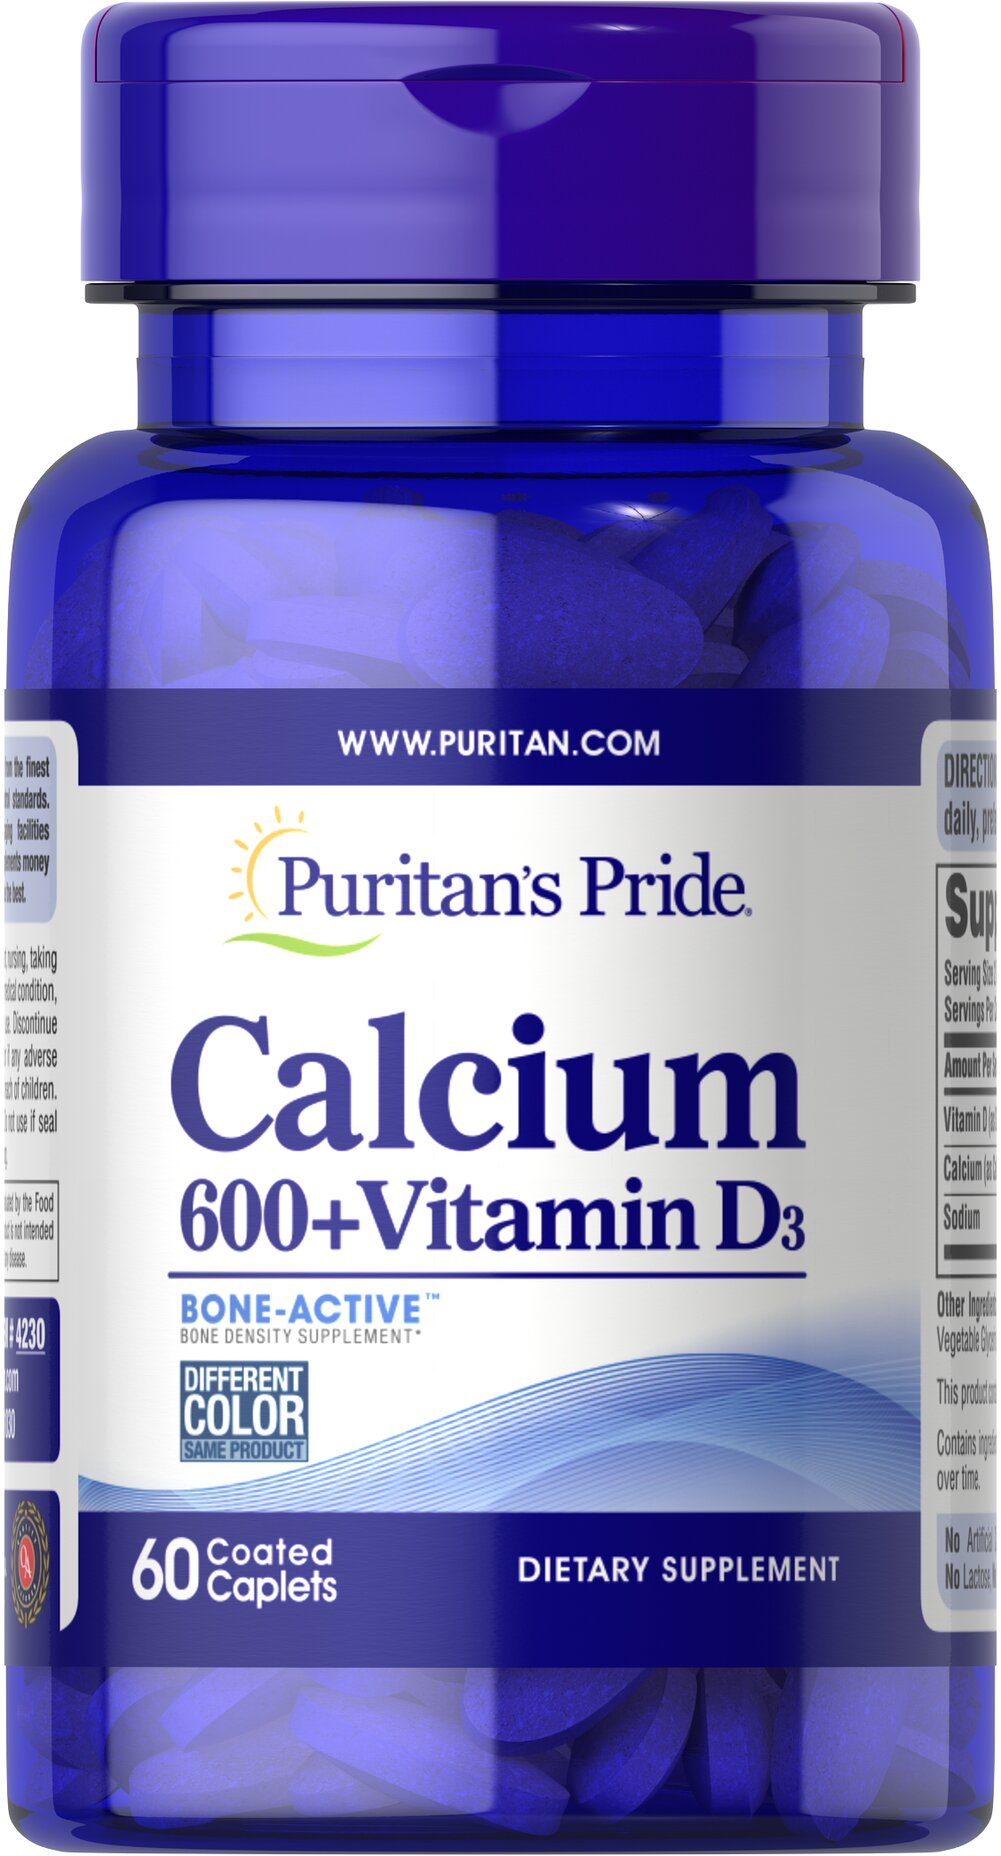 Calcium Carbonate 600 mg + Vitamin D 250 IU <p>Calcium is the primary mineral responsible for strong bones.** The body also uses Calcium for proper muscle contraction and nerve function.**  Just two tablets of our High Potency Calcium 600 + Vitamin D give you the protection of 120% of the Daily Value for Calcium. Each tablet contains 600 mg Calcium and 125 I.U. Vitamin D. Adults can take one or two tablets daily.</p> 60 Caplets 600 mg $3.84